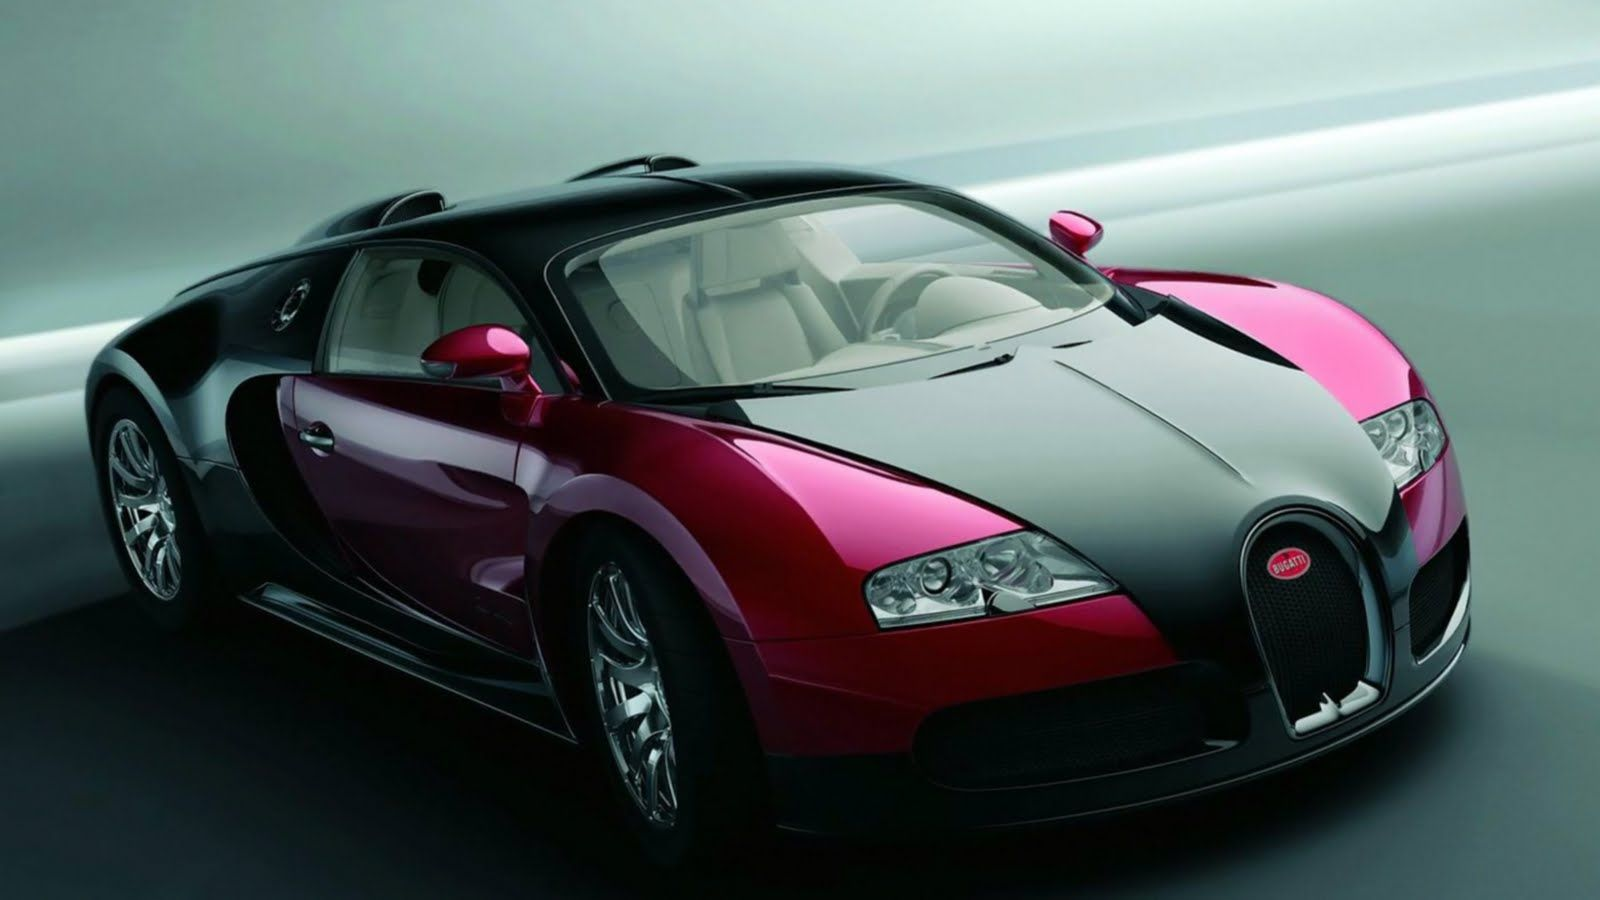 The Bugatti Veyron EB 16.4 Is A Mid Engined Sports Car, Designed And  Developed By The Volkswagen Group And Manufactured In Molsheim, France By  Bugatti ...